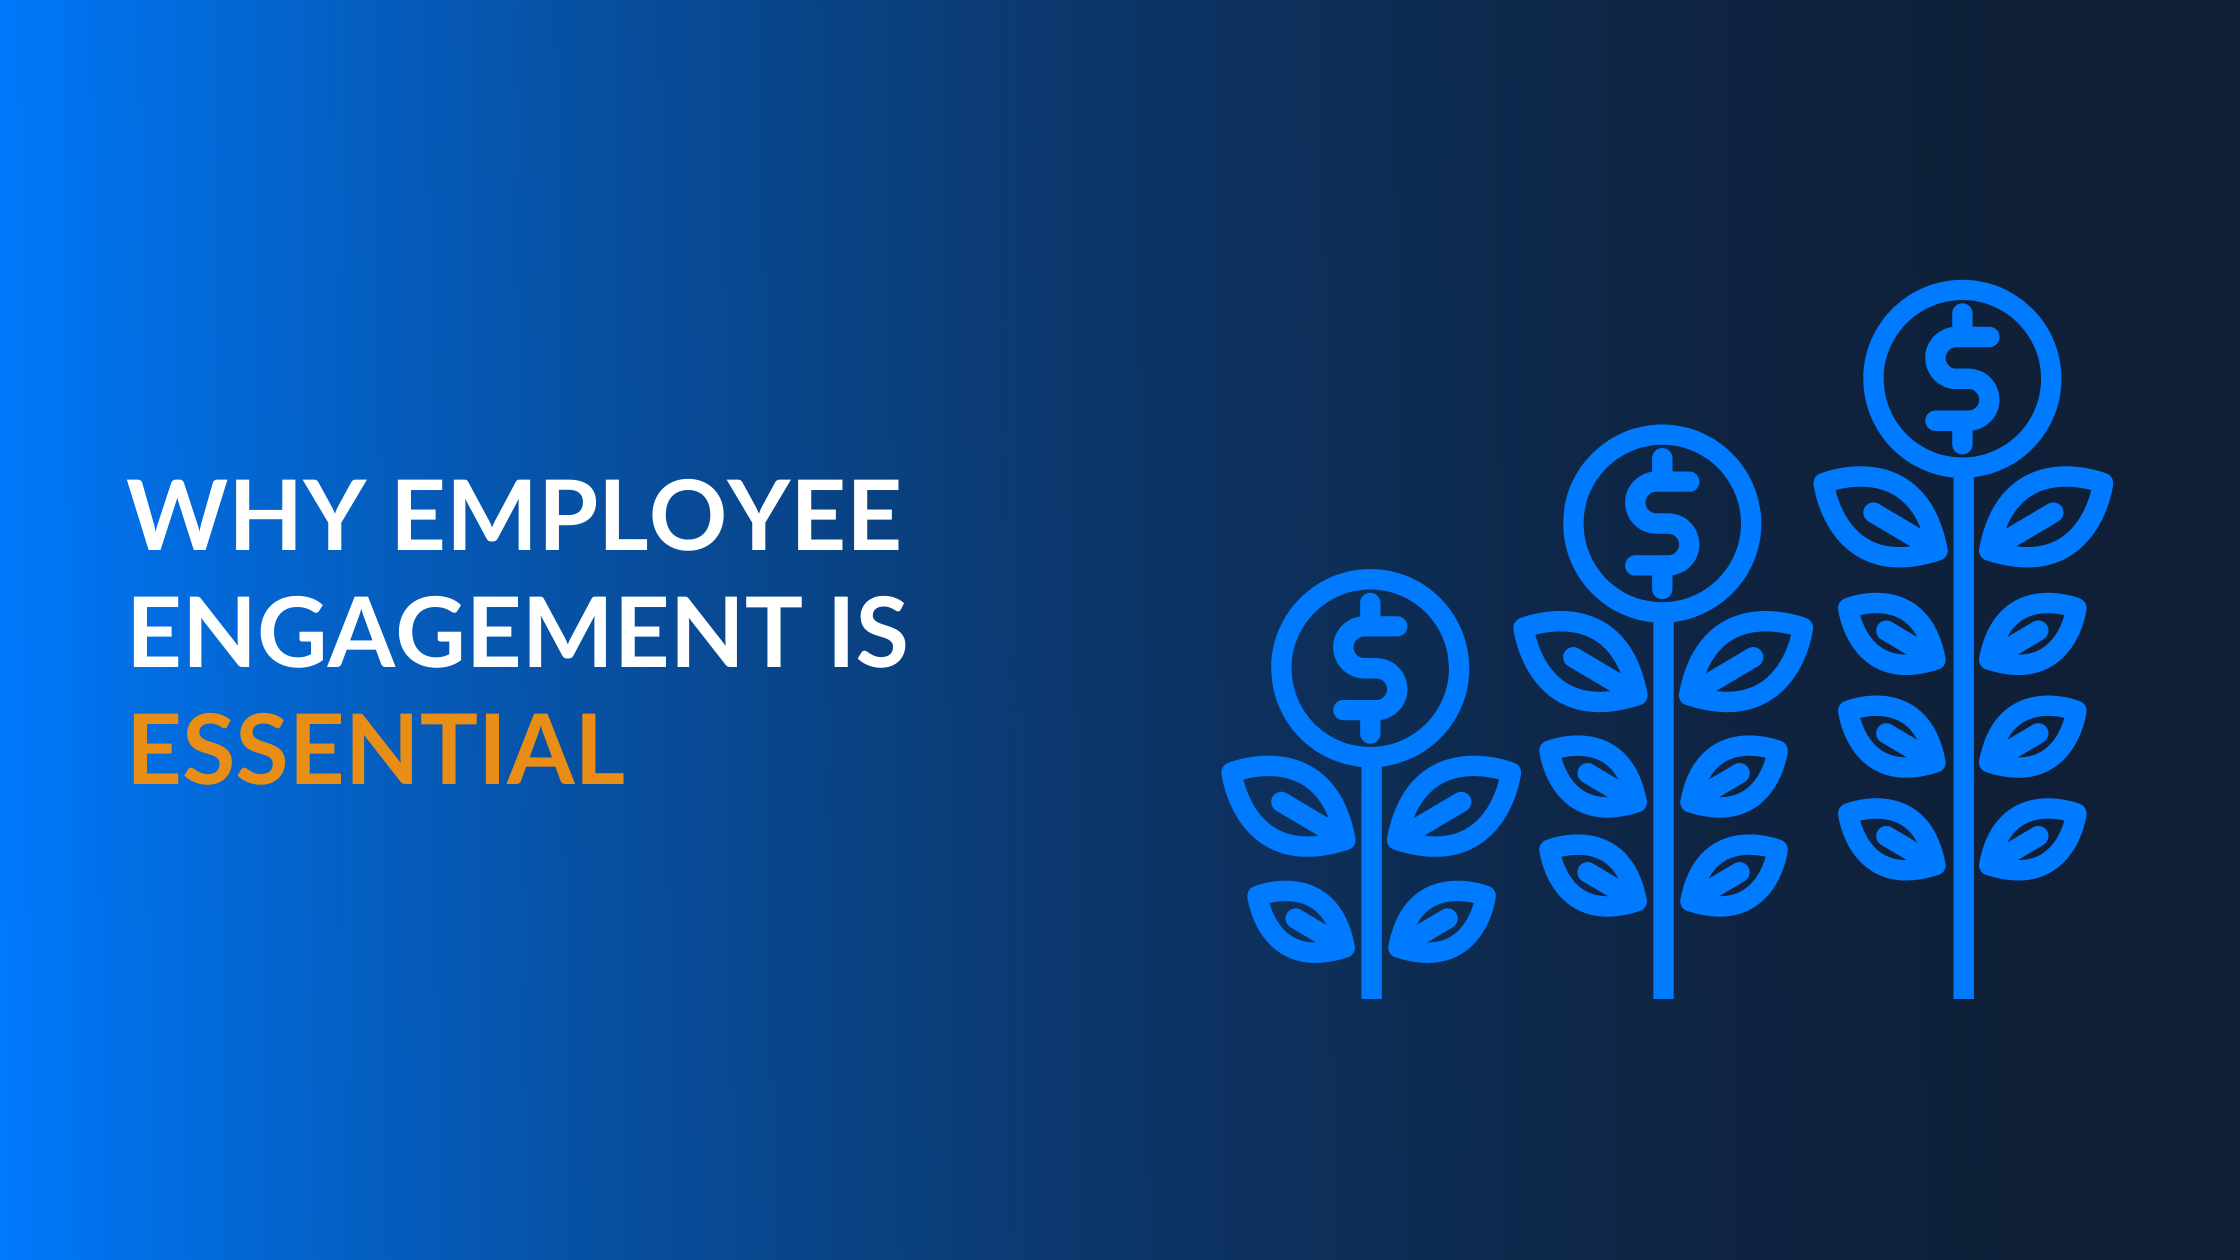 Why Employee Engagement is Essential for Your Business